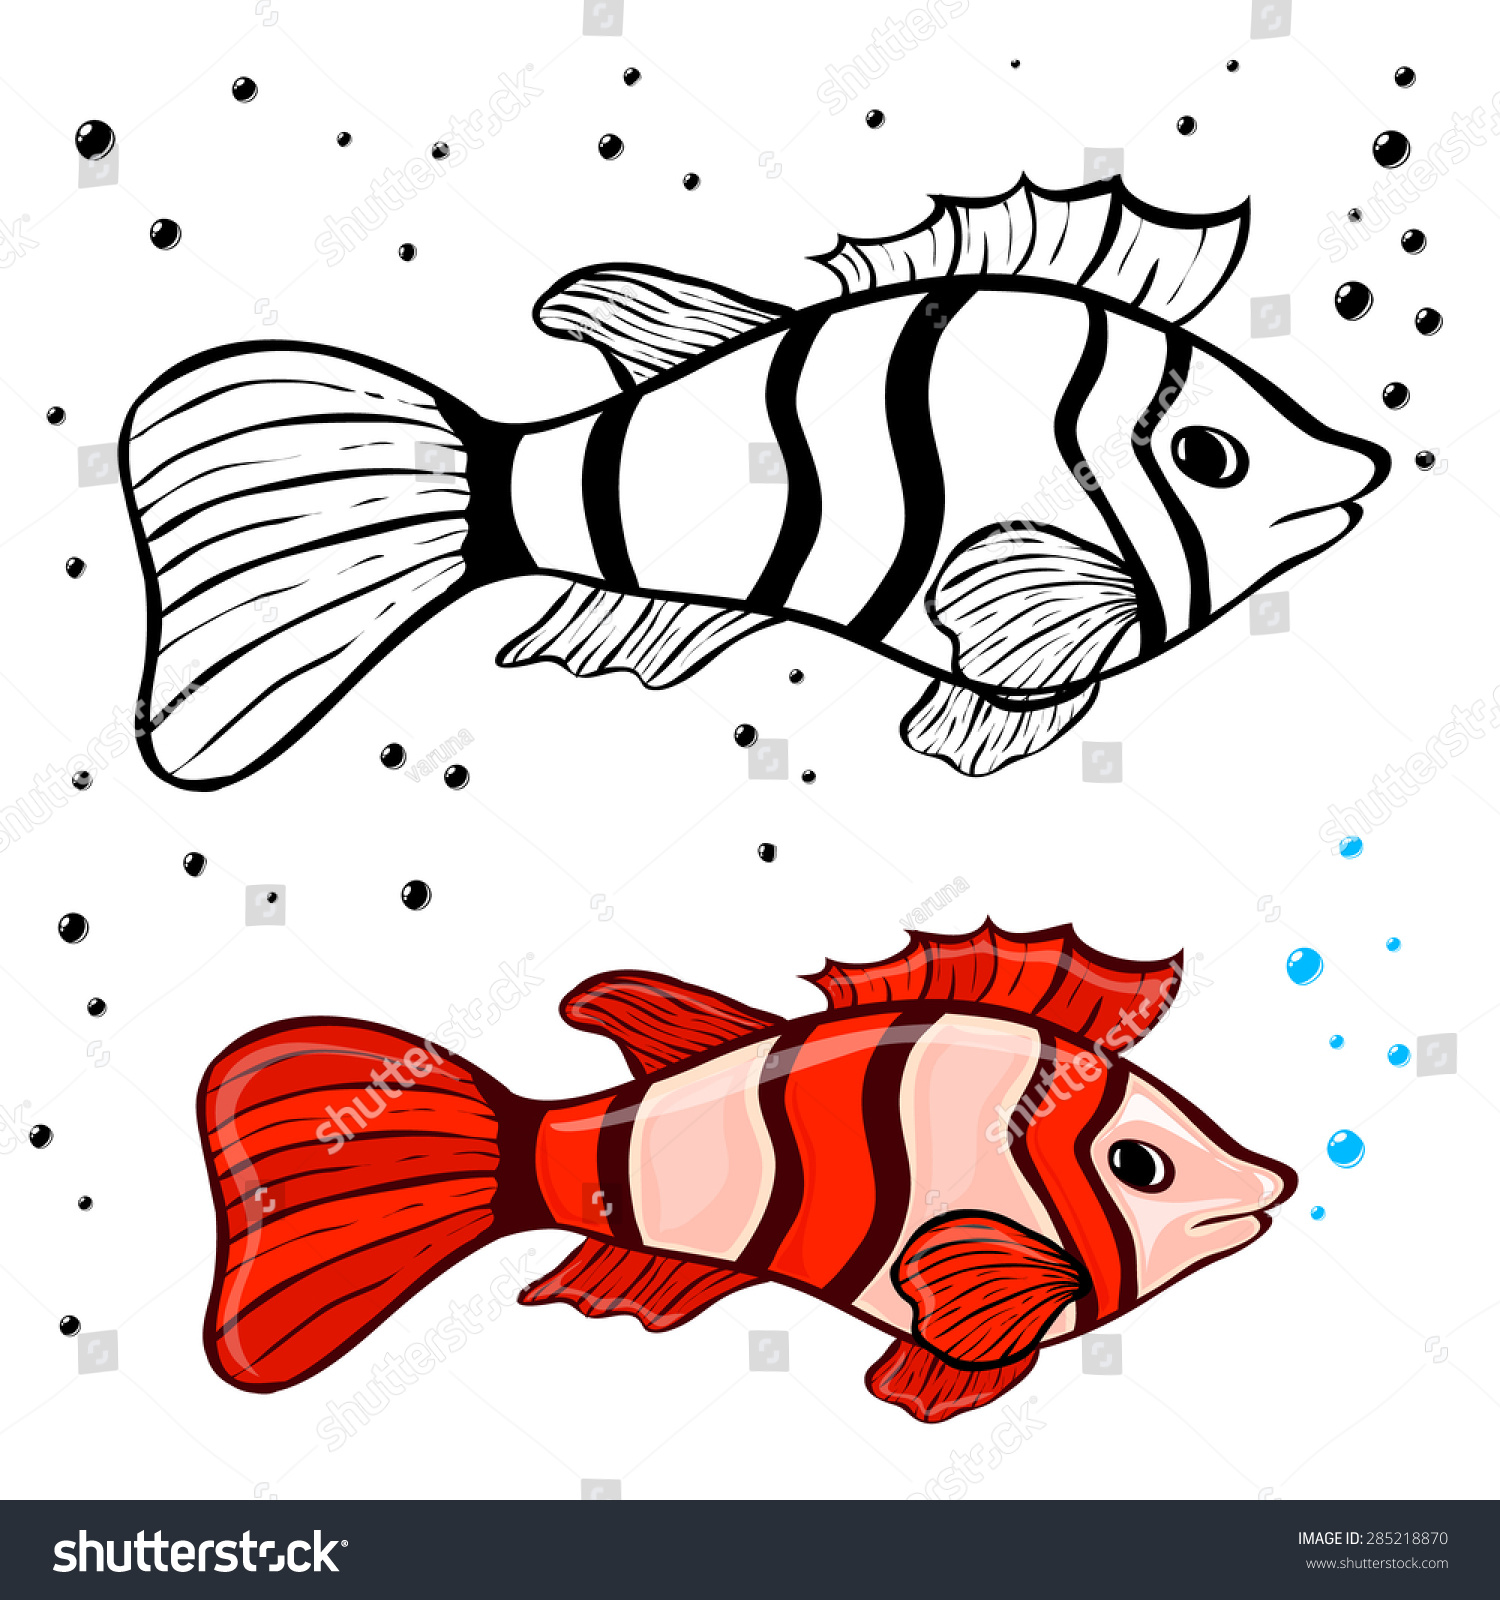 Fine Fish Coloring Pictures - Drawing Coloring - androidharga.info